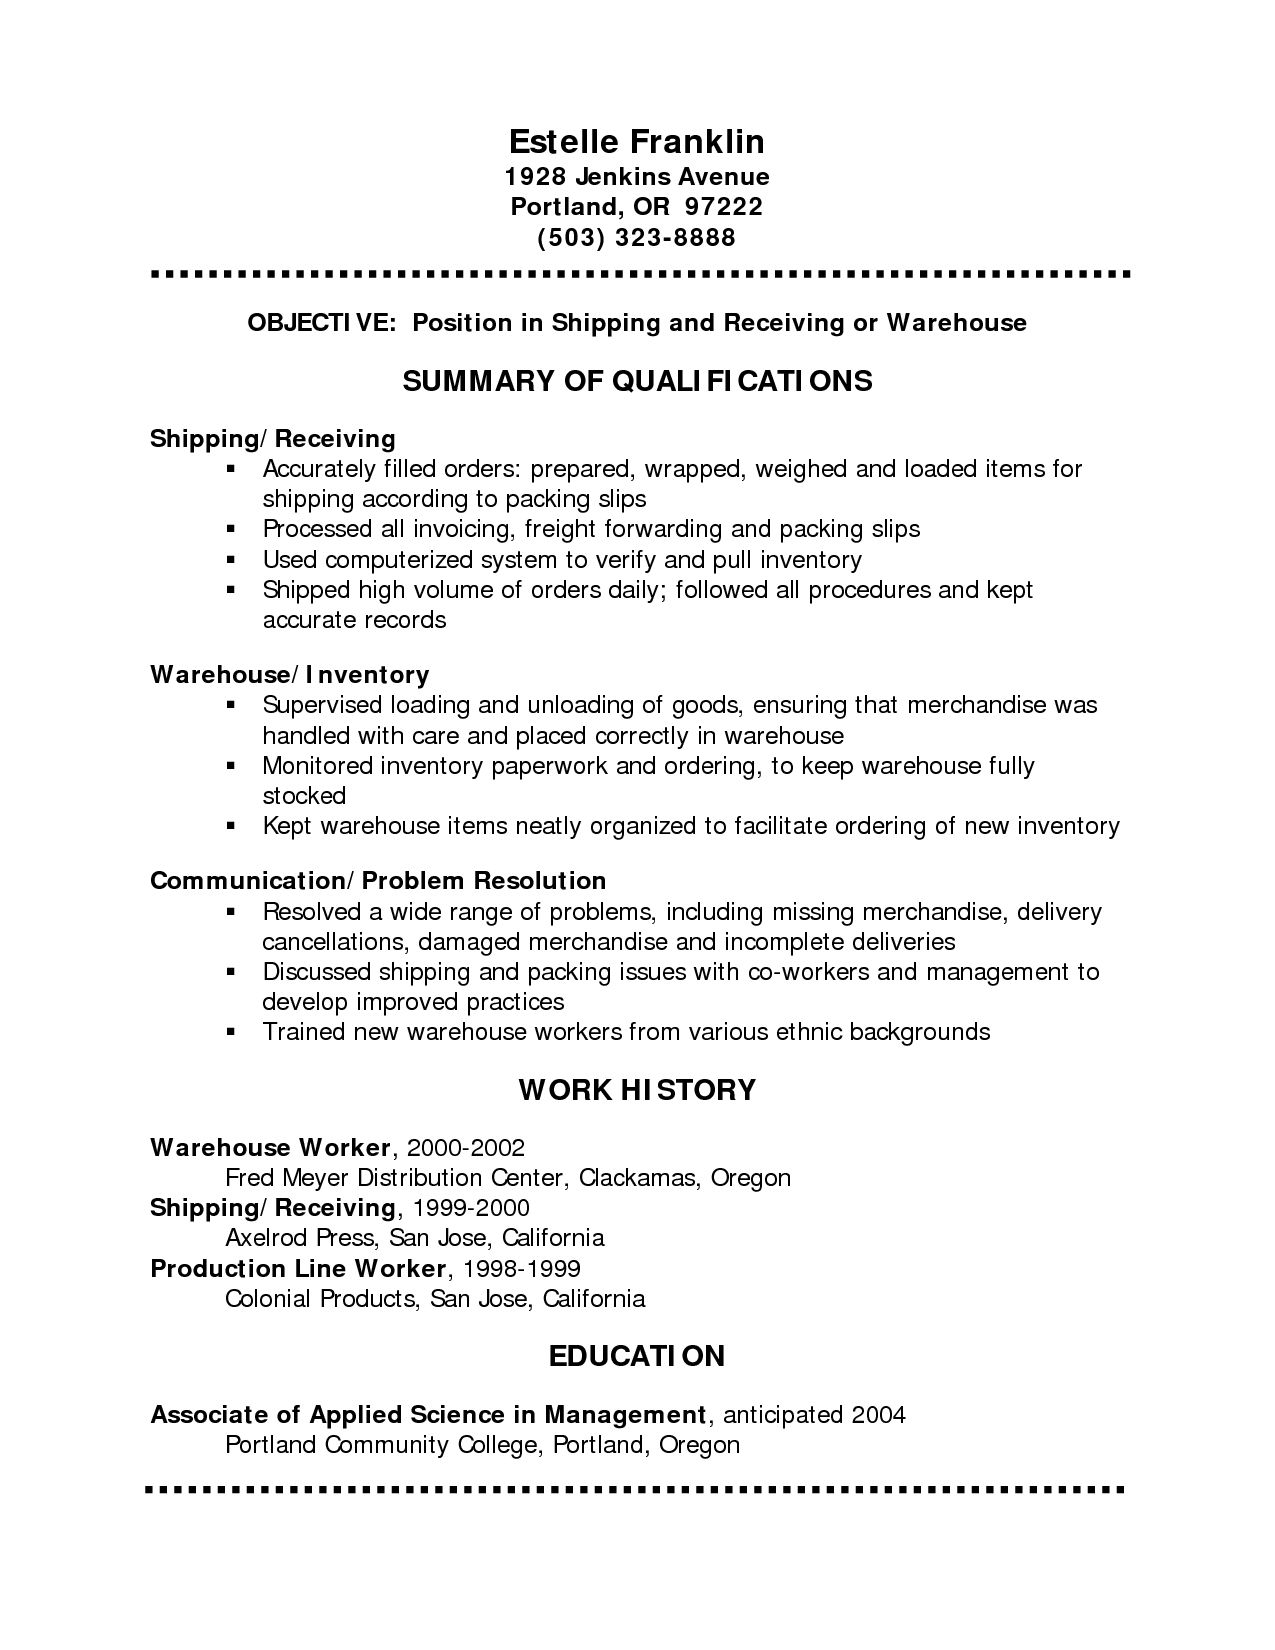 apa resume sample computer engineer cover letter costume references reference page - Microsoft Cover Letter Templates For Resume